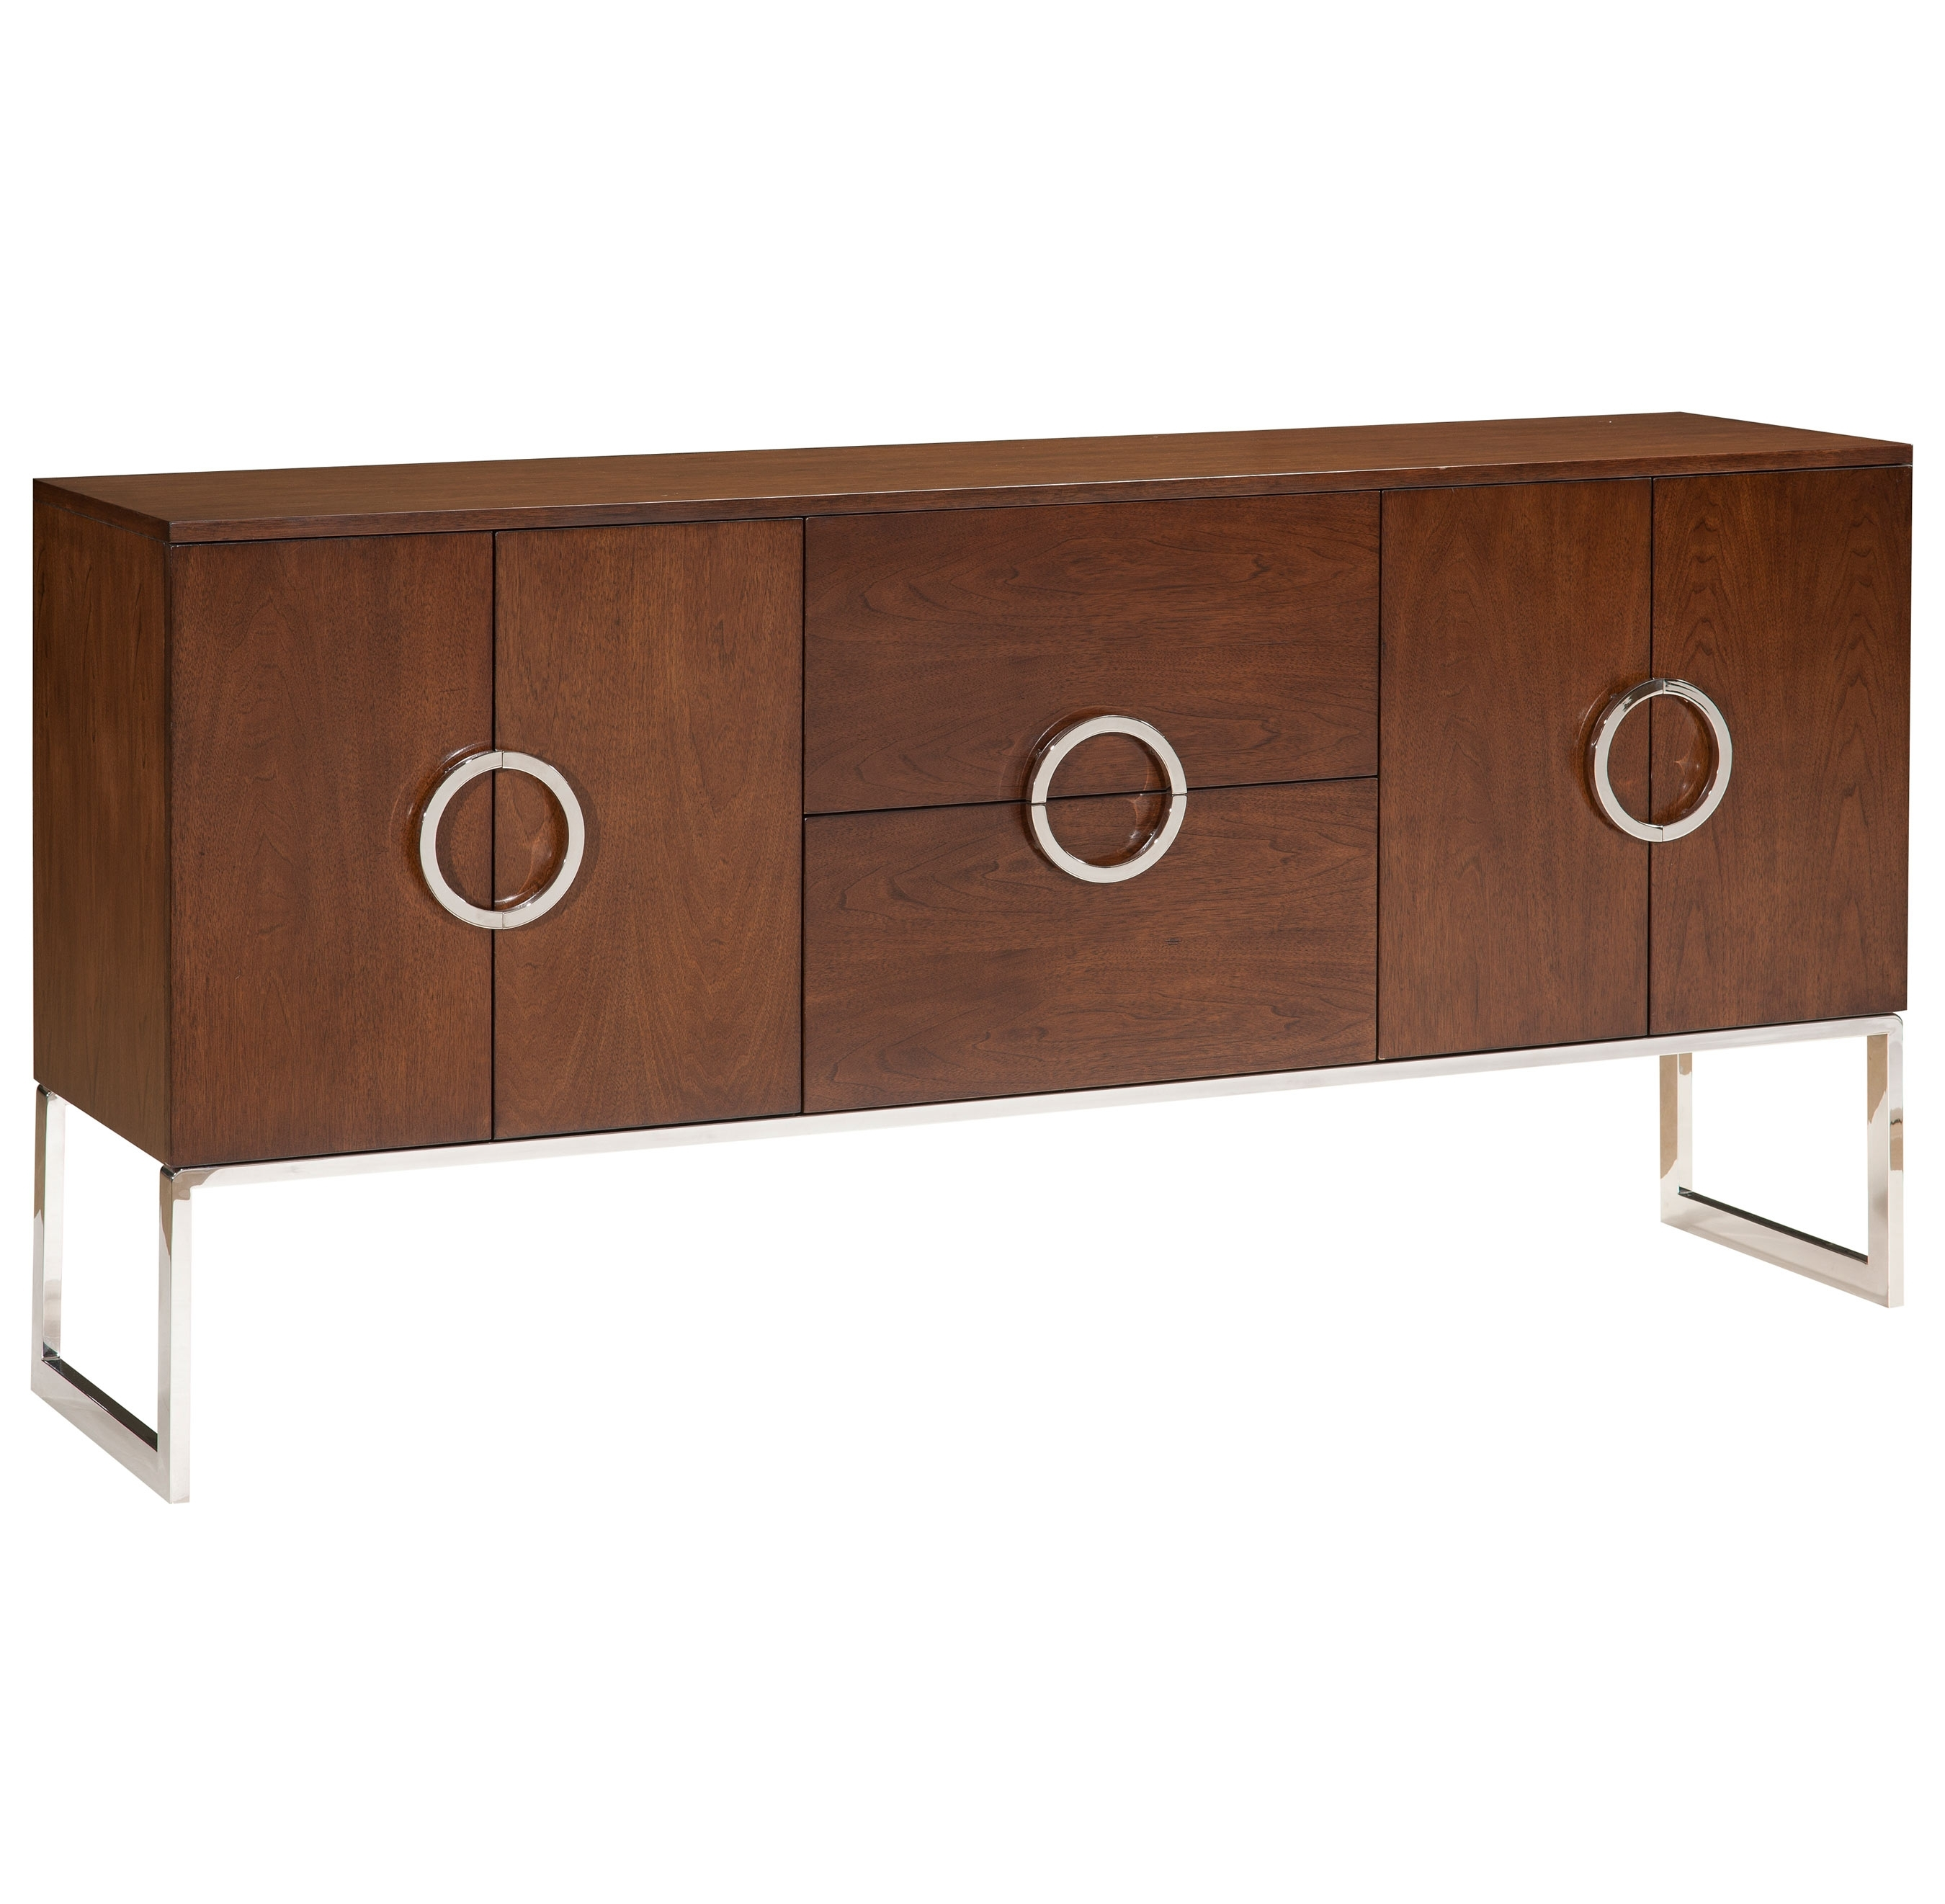 Buffets & Sideboards | Kathy Kuo Home Pertaining To Newest Brown Chevron 4 Door Sideboards (#7 of 20)